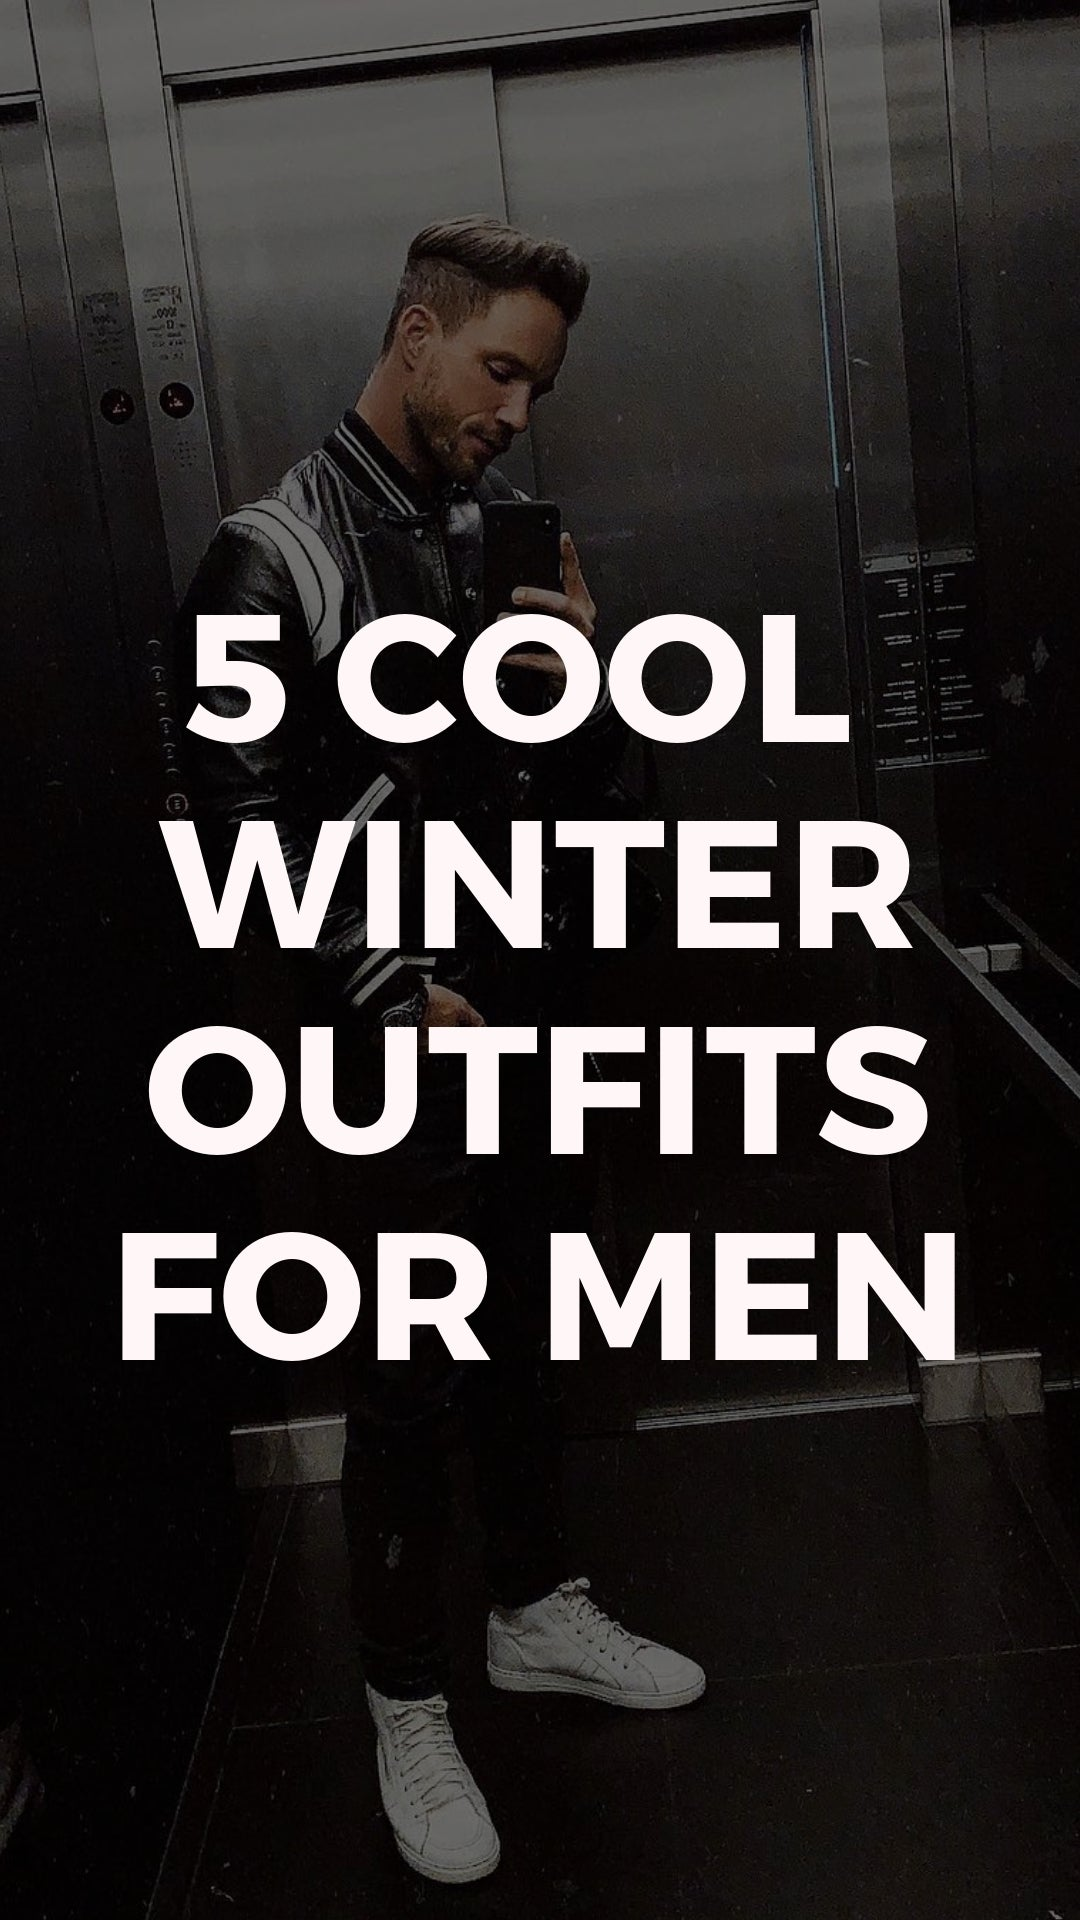 5 coolest winter outfits for men #winter #style #fallstyle #mens #fashion #street #style